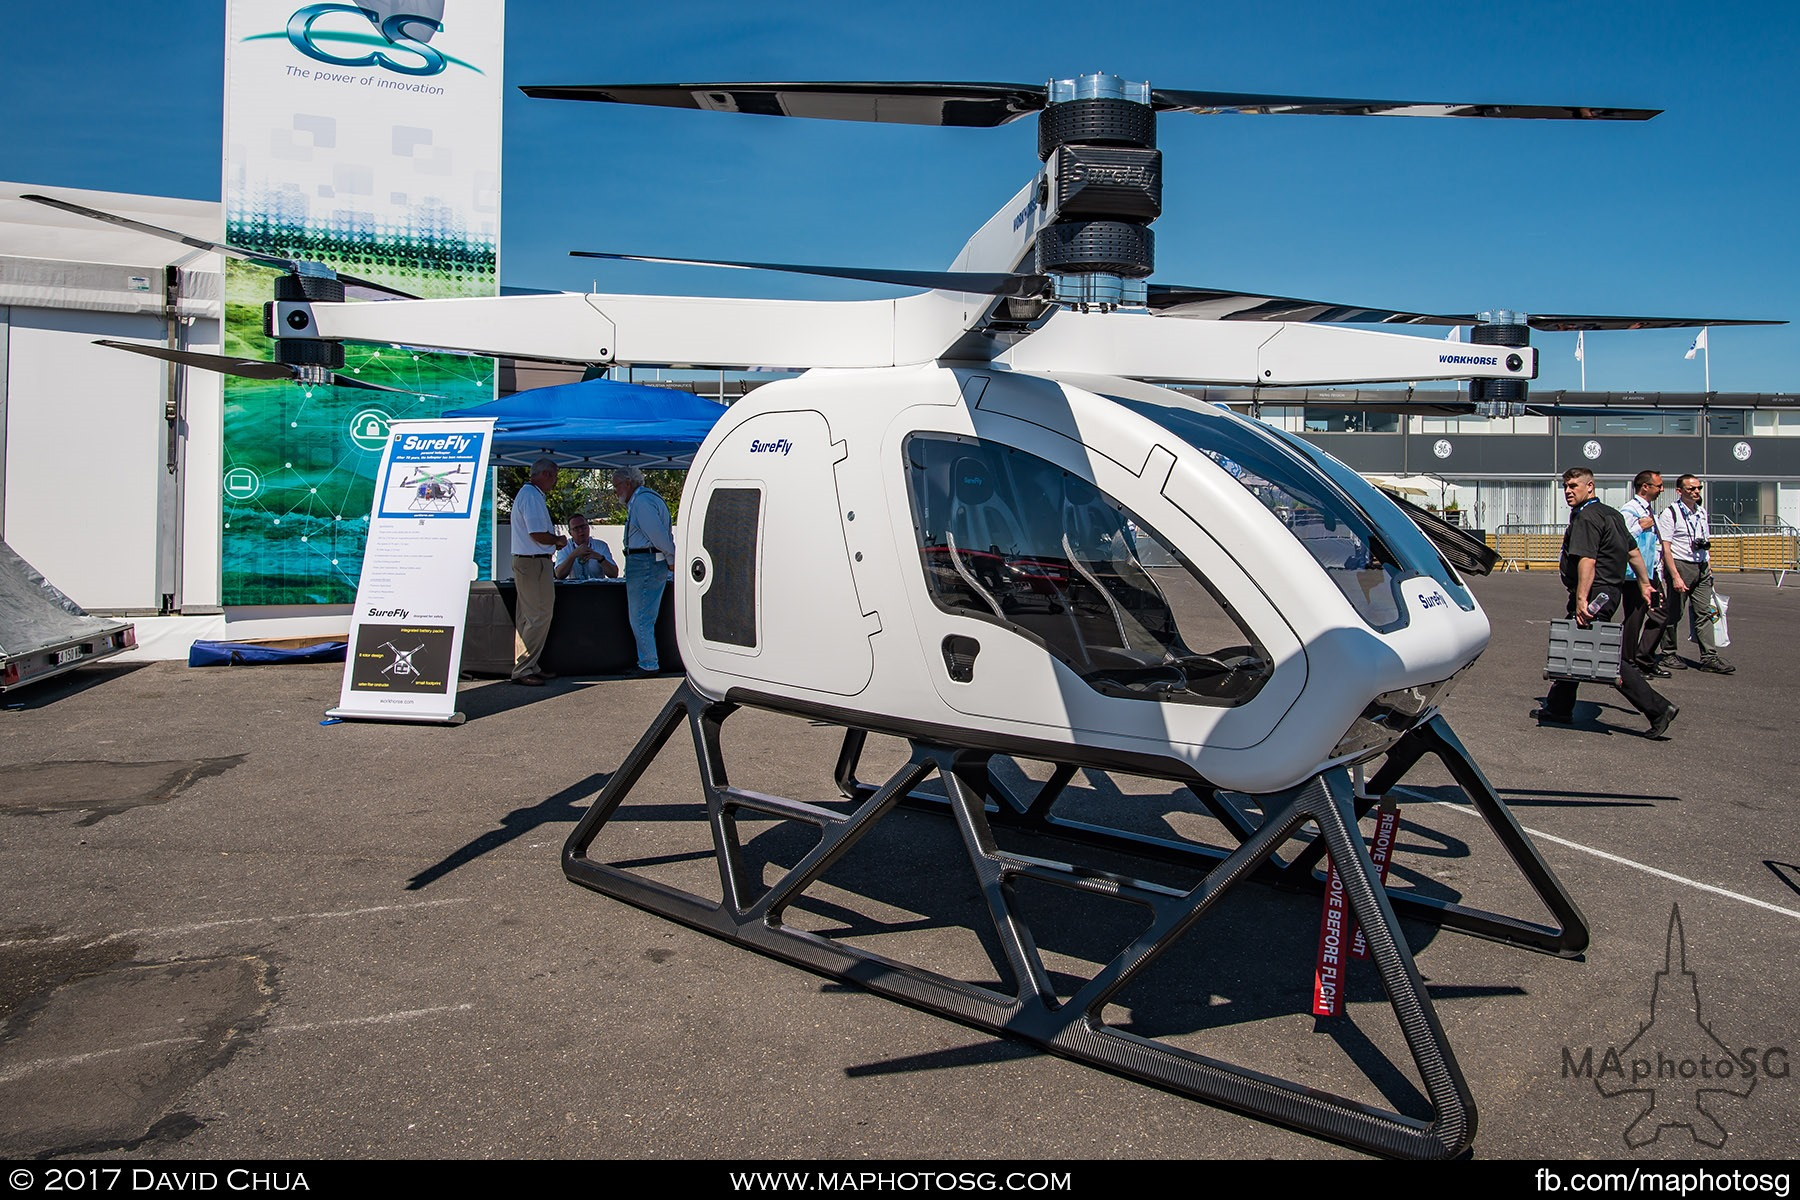 24. Workhorse group's Surefly personal helicopter turned some heads in the Static Display area. It is a two seater helicopter powered by 8 propellers with a flight time of one hour with a full tank of gasoline. Workhorse is targeting to sell this helicopter for a price of USD200000.